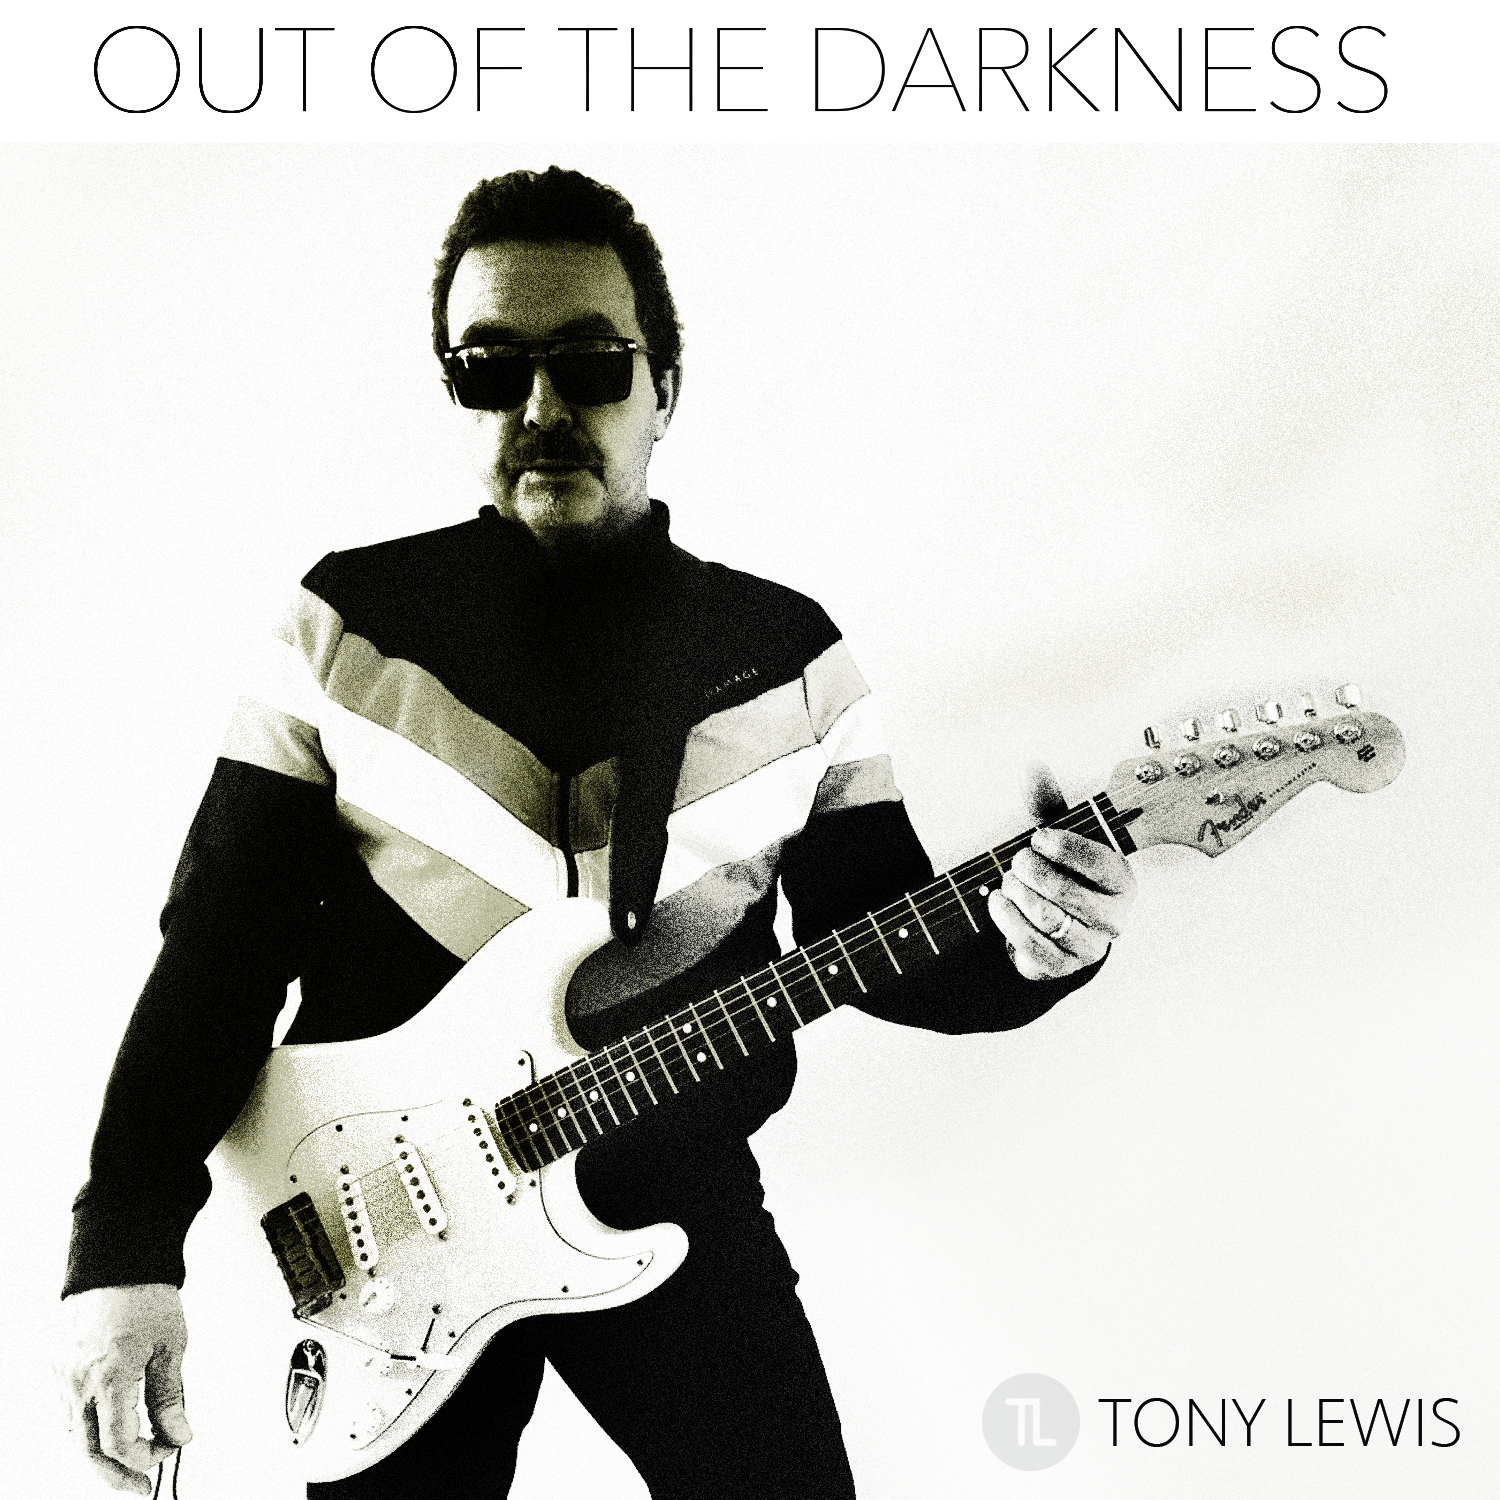 Tony Lewis: Out Of The Darkness